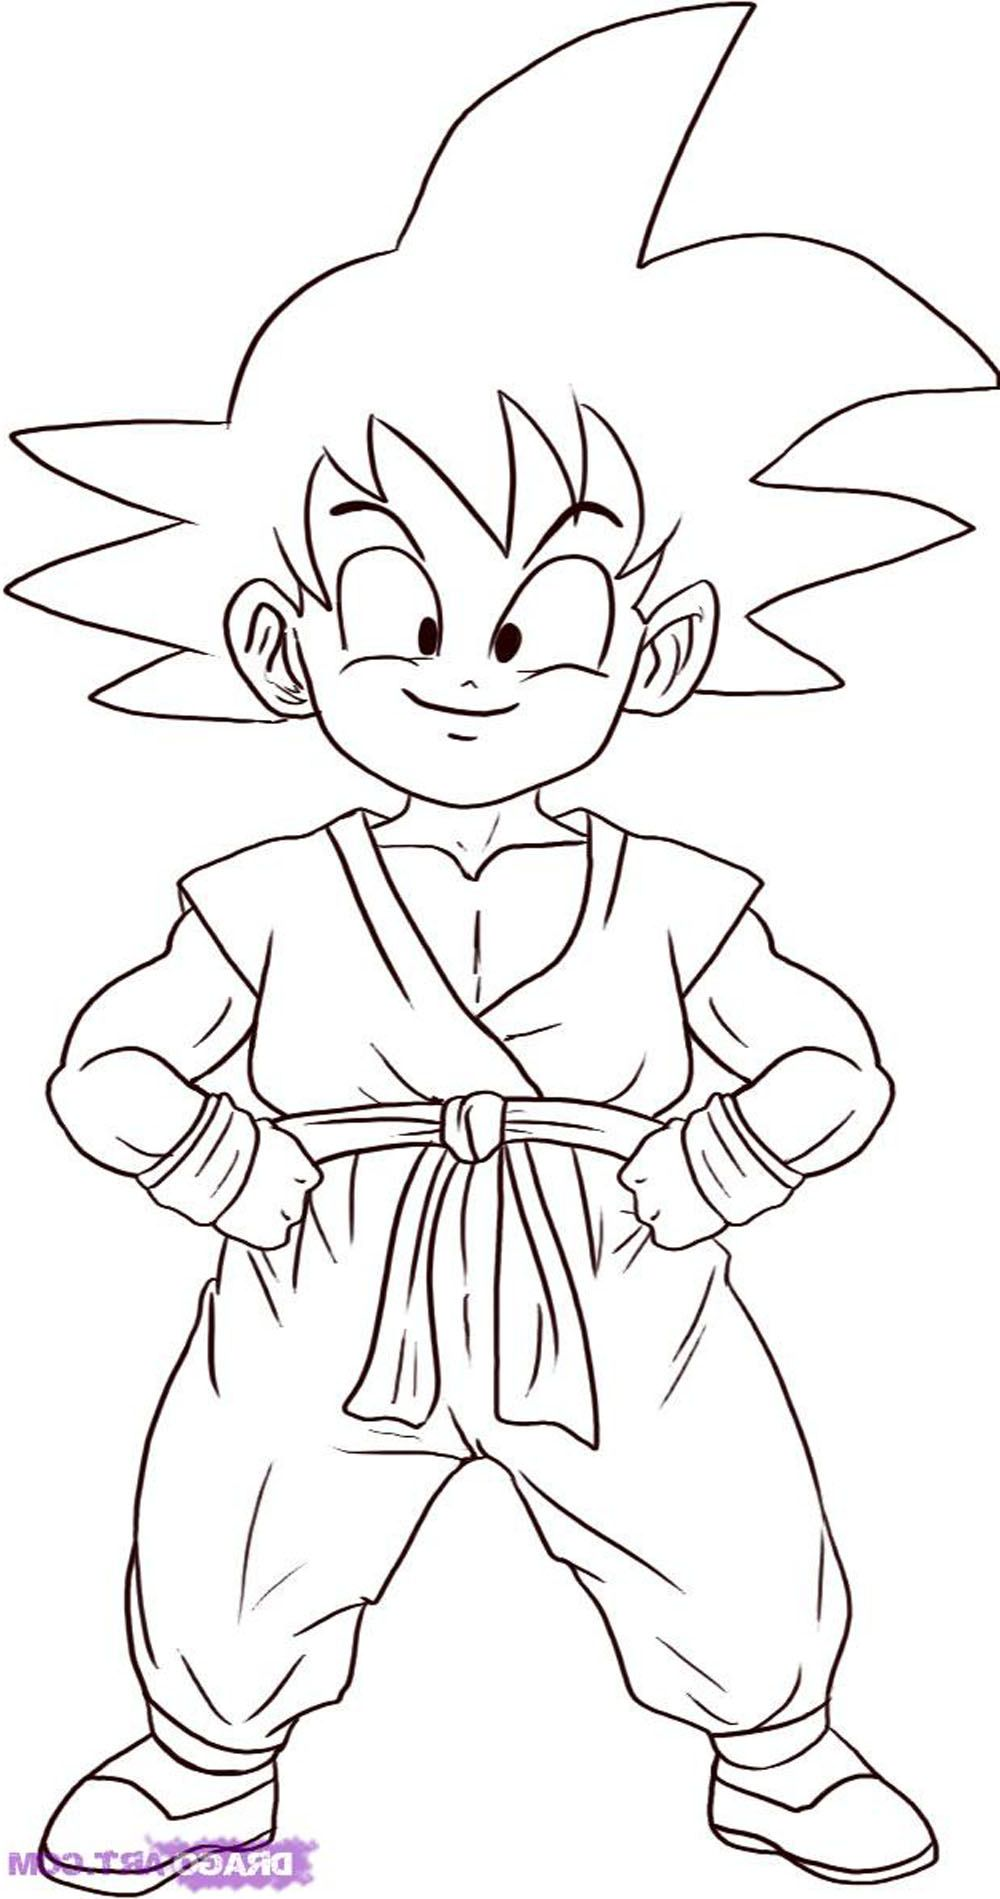 Imagen de Goku niño para colorear | Dragon Ball Party